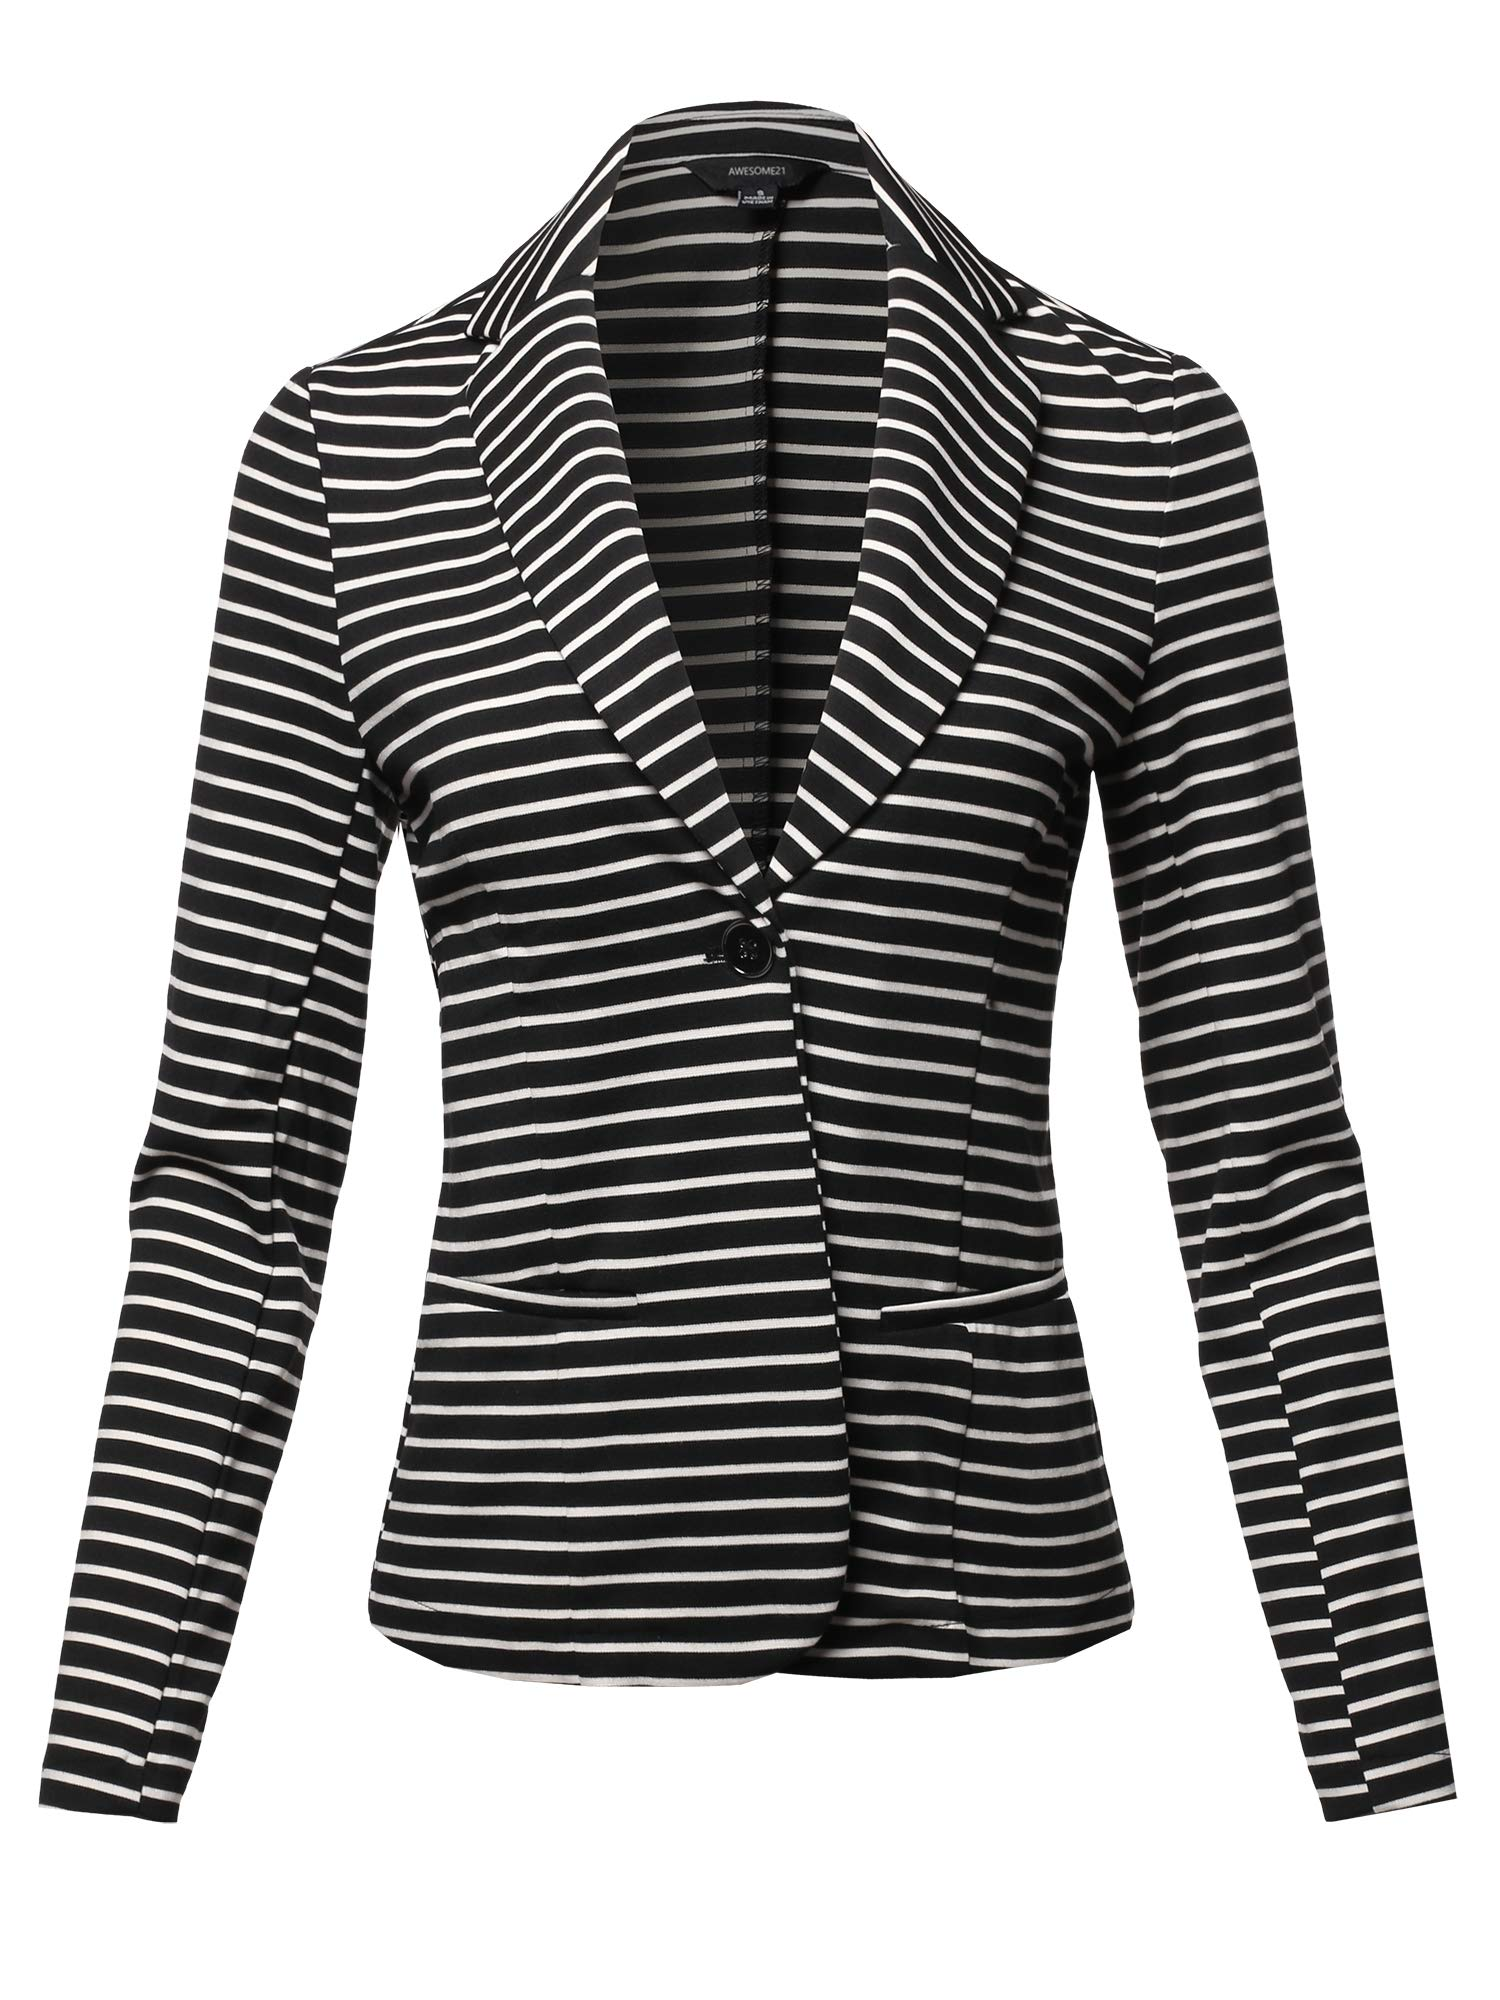 Casual Stylish Patterned Long Sleeves Blazer Jacket Black Stripe Size L